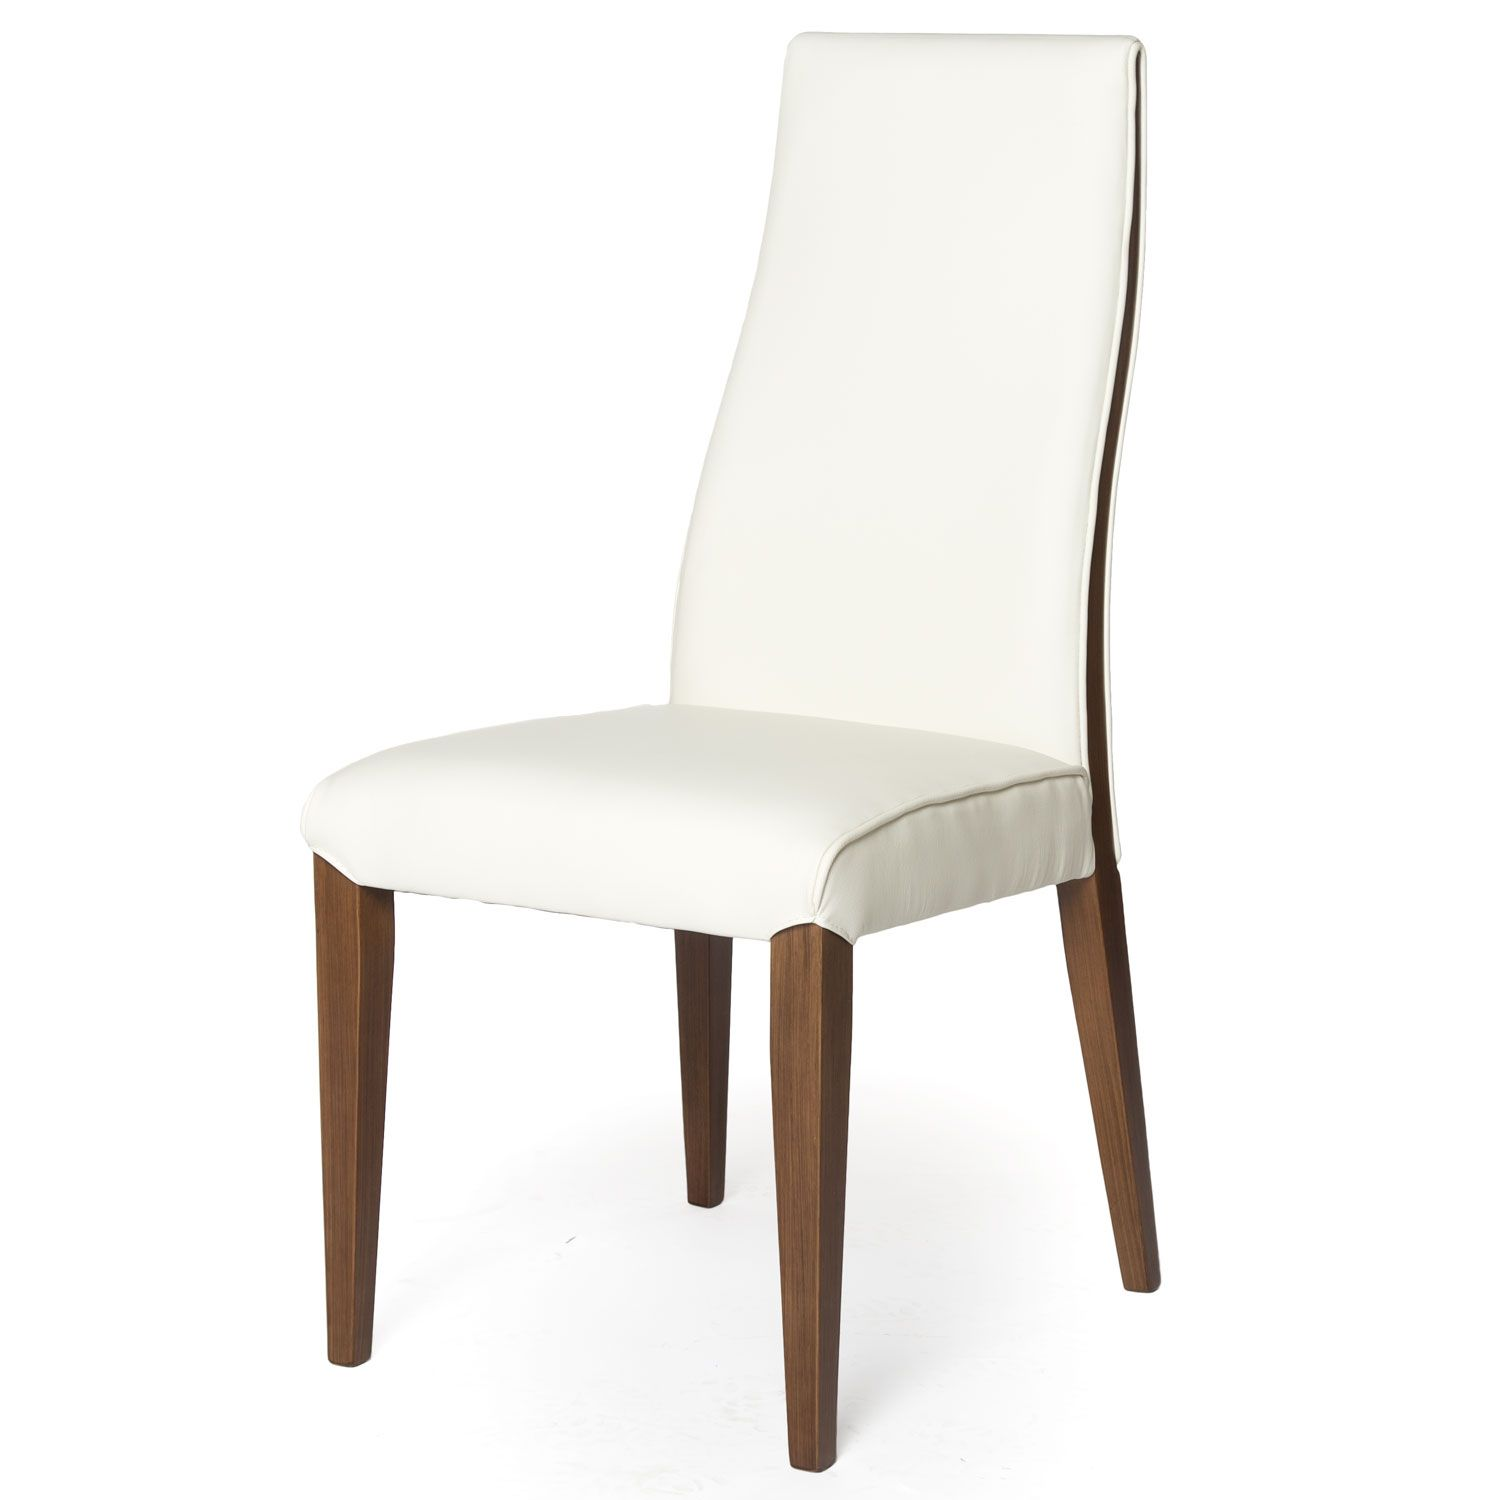 Real Leather Dining Chair With Solid Wood Legs Contemporary